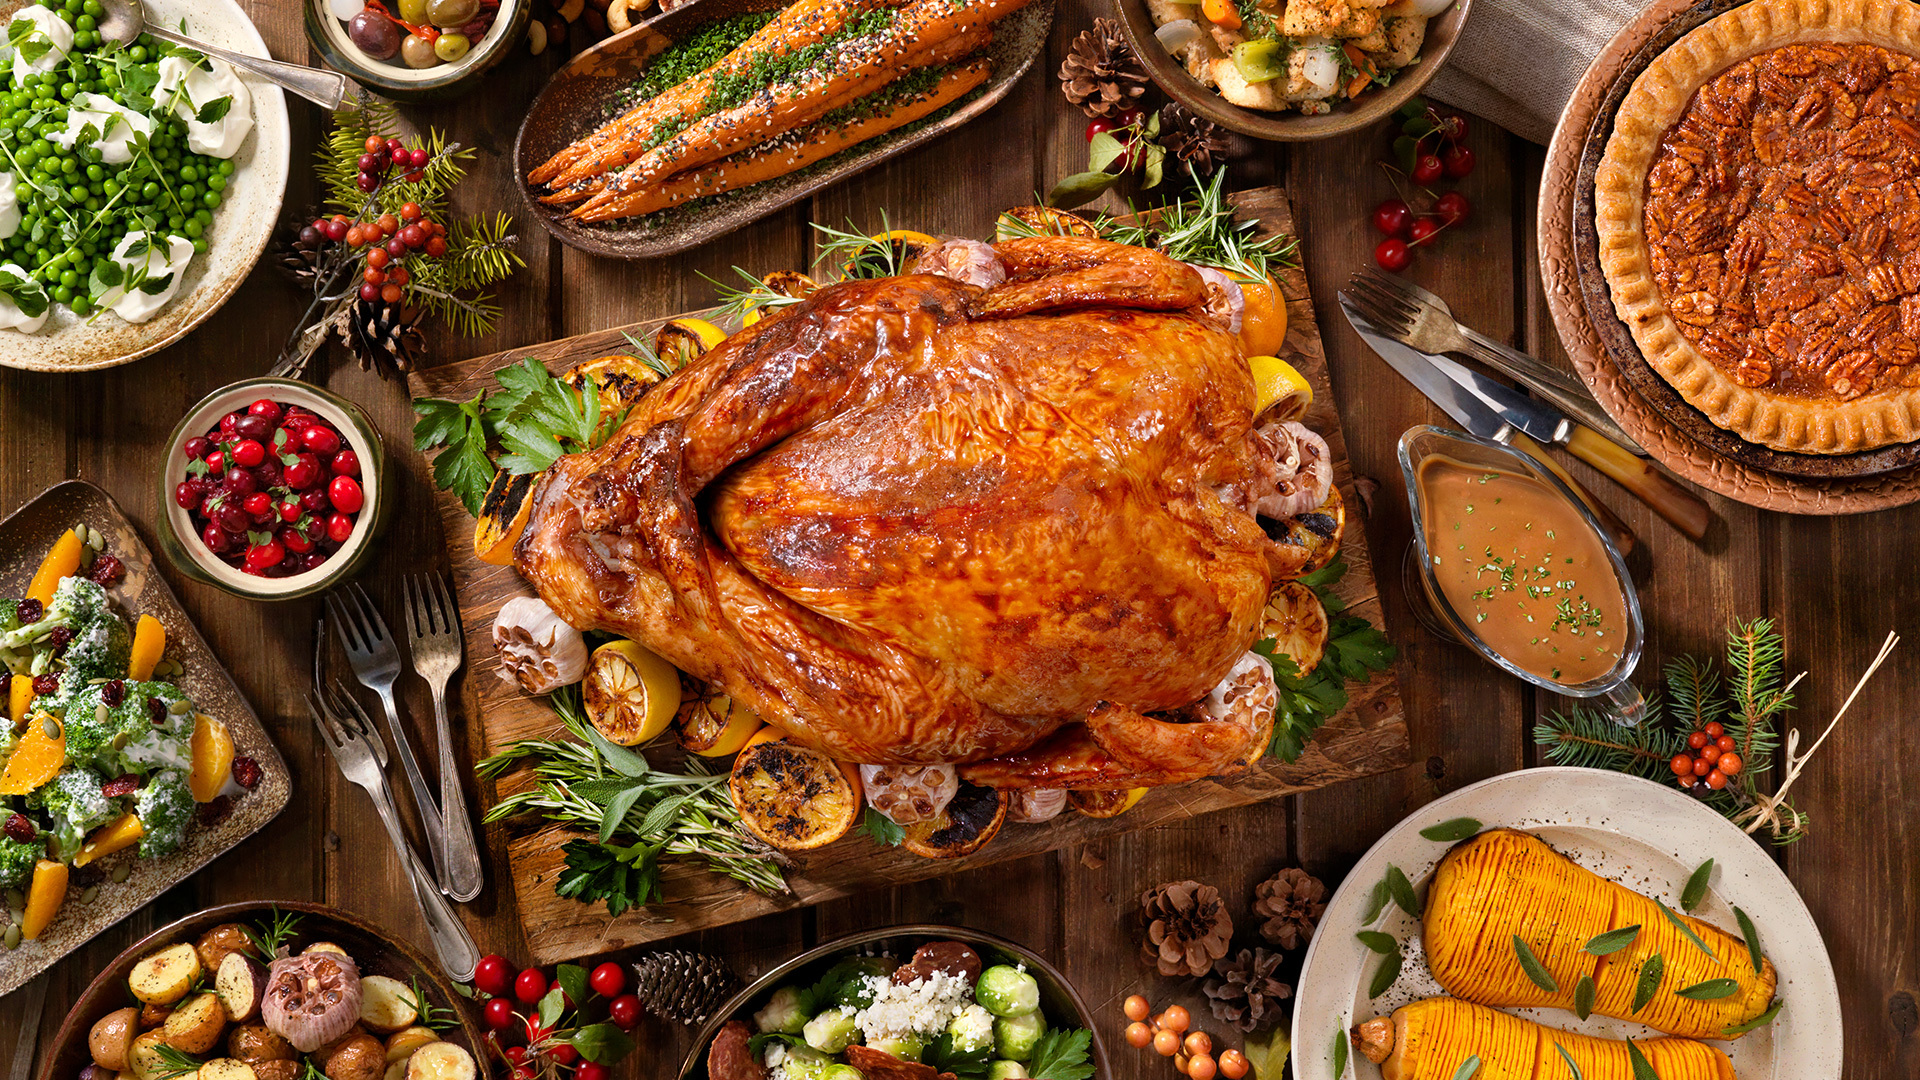 Savory and sweet treats are everywhere this season. Here's how to enjoy the holidays while eating your favorite foods.